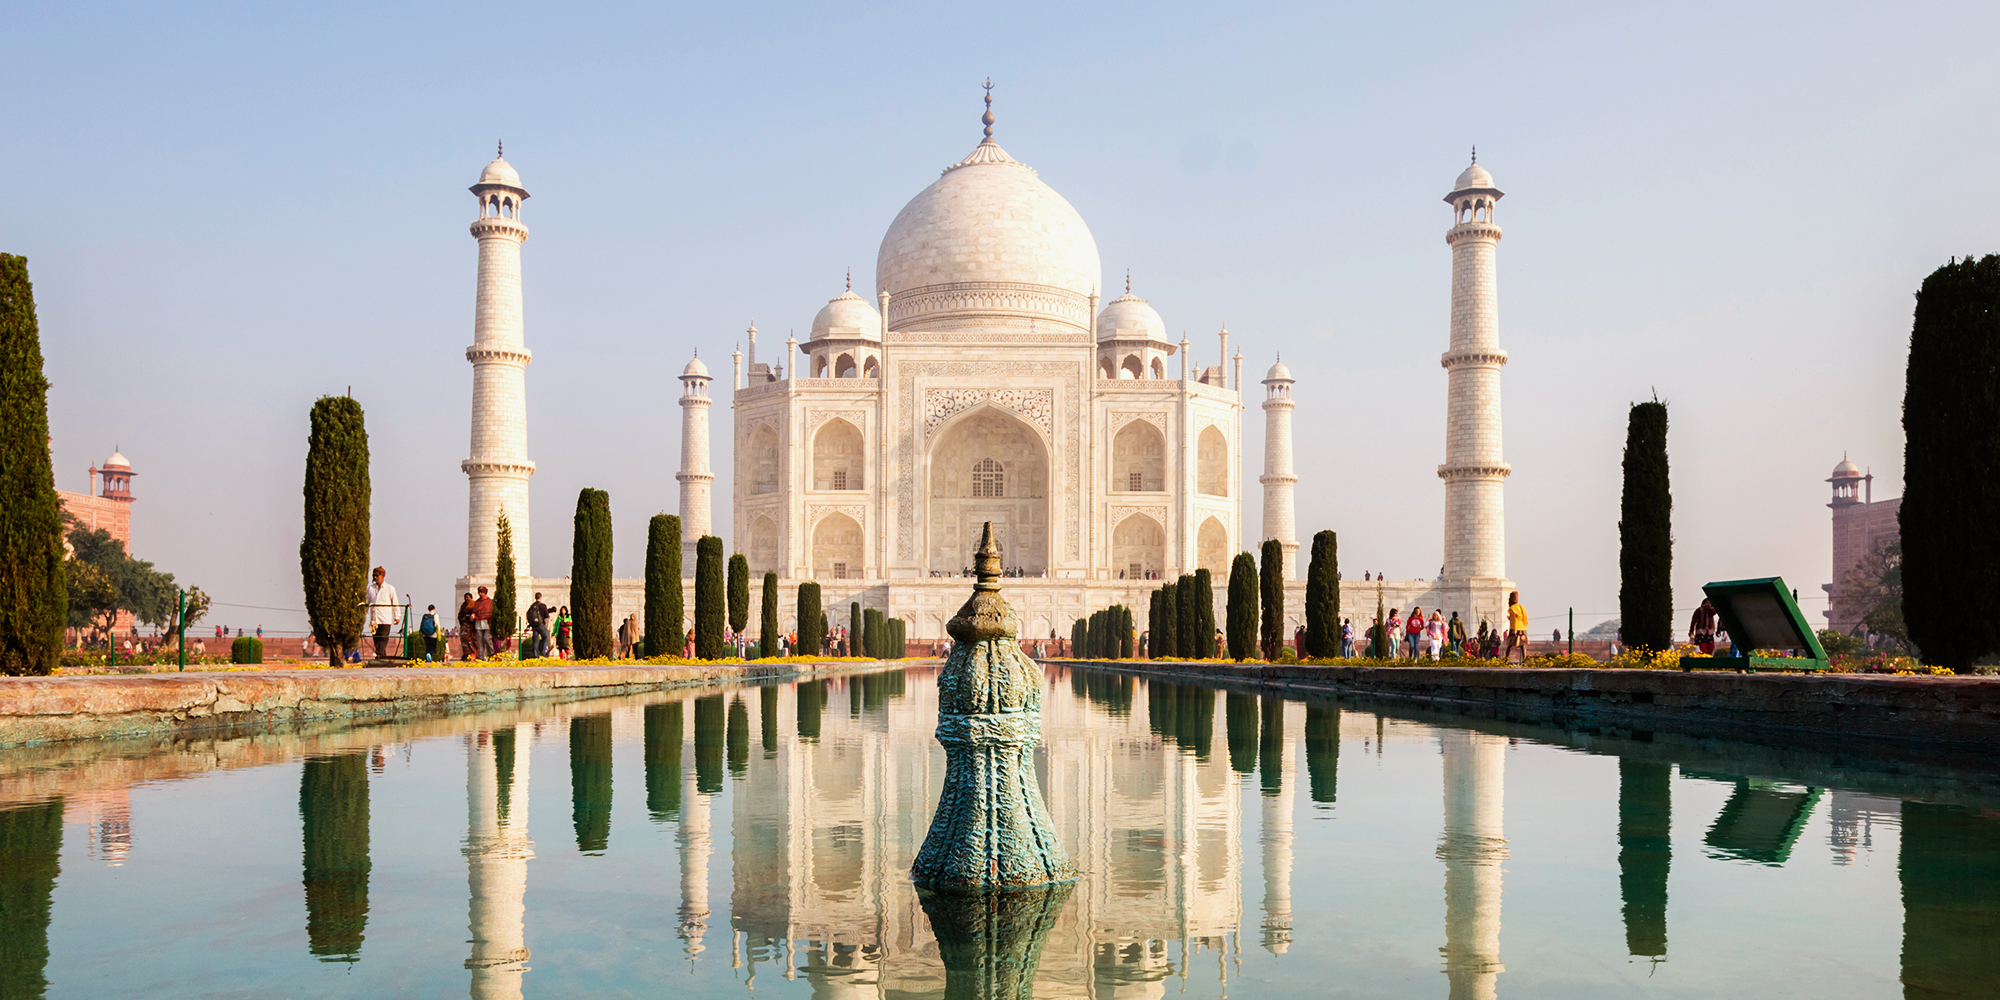 11 Most Famous Buildings In The World